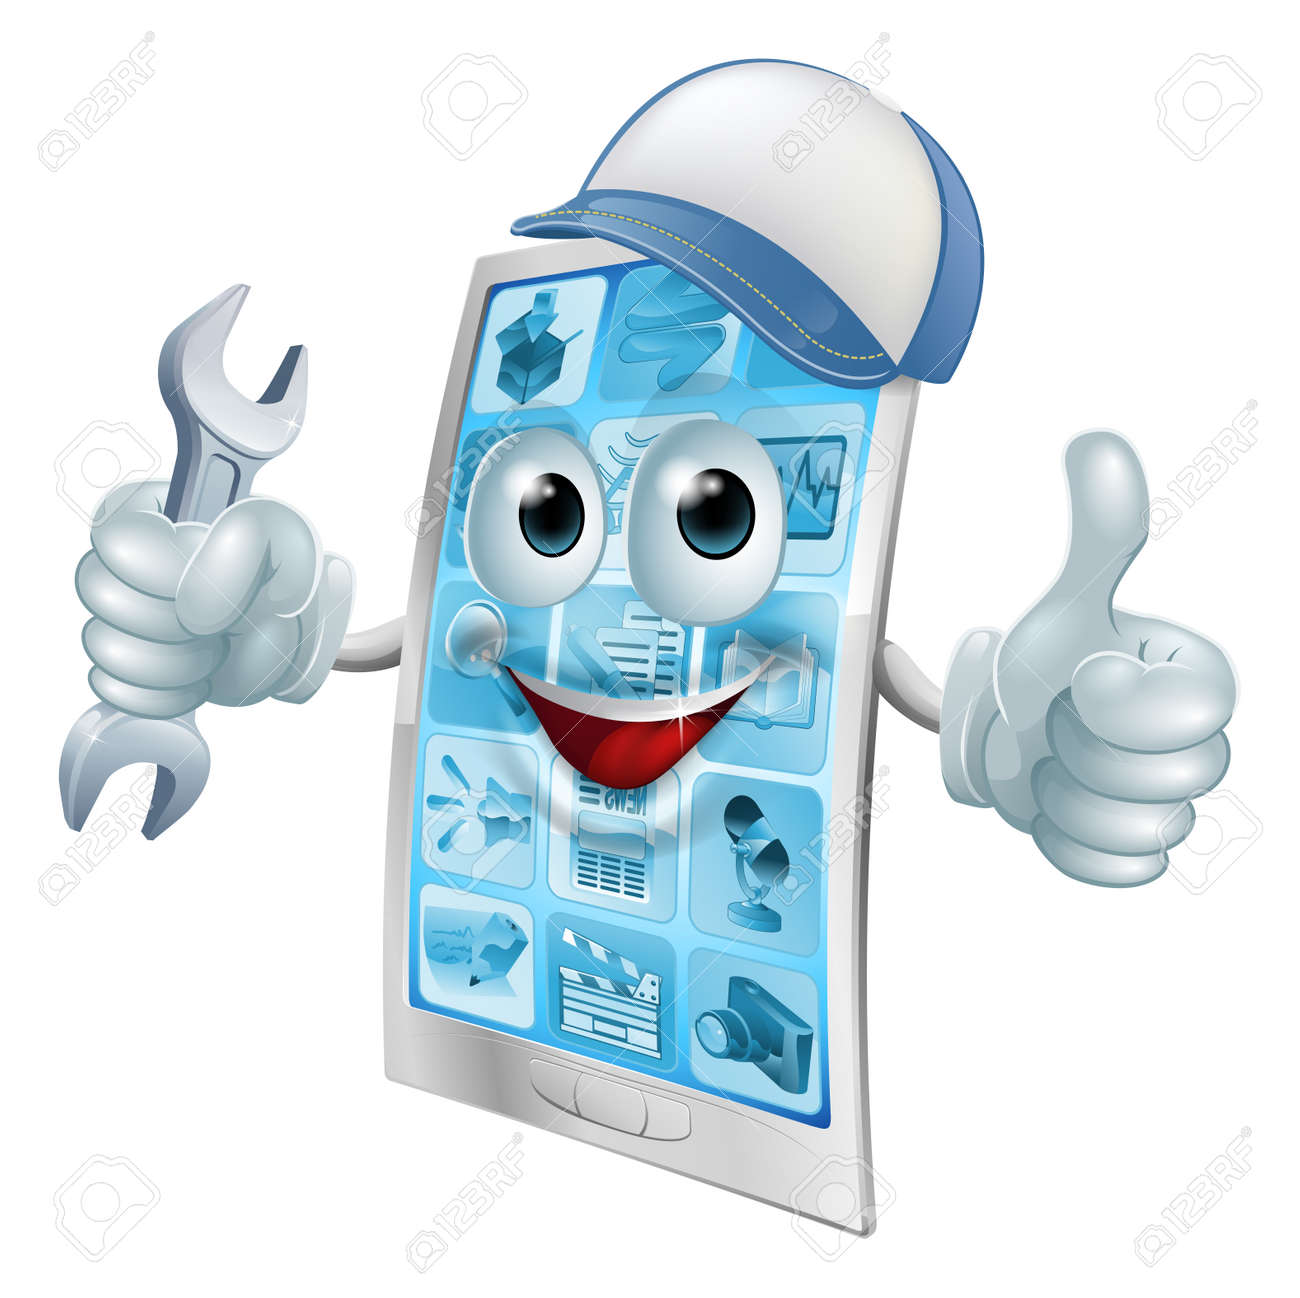 Phone repair cartoon character in cap with spanner doing a thumbs up - 33565838